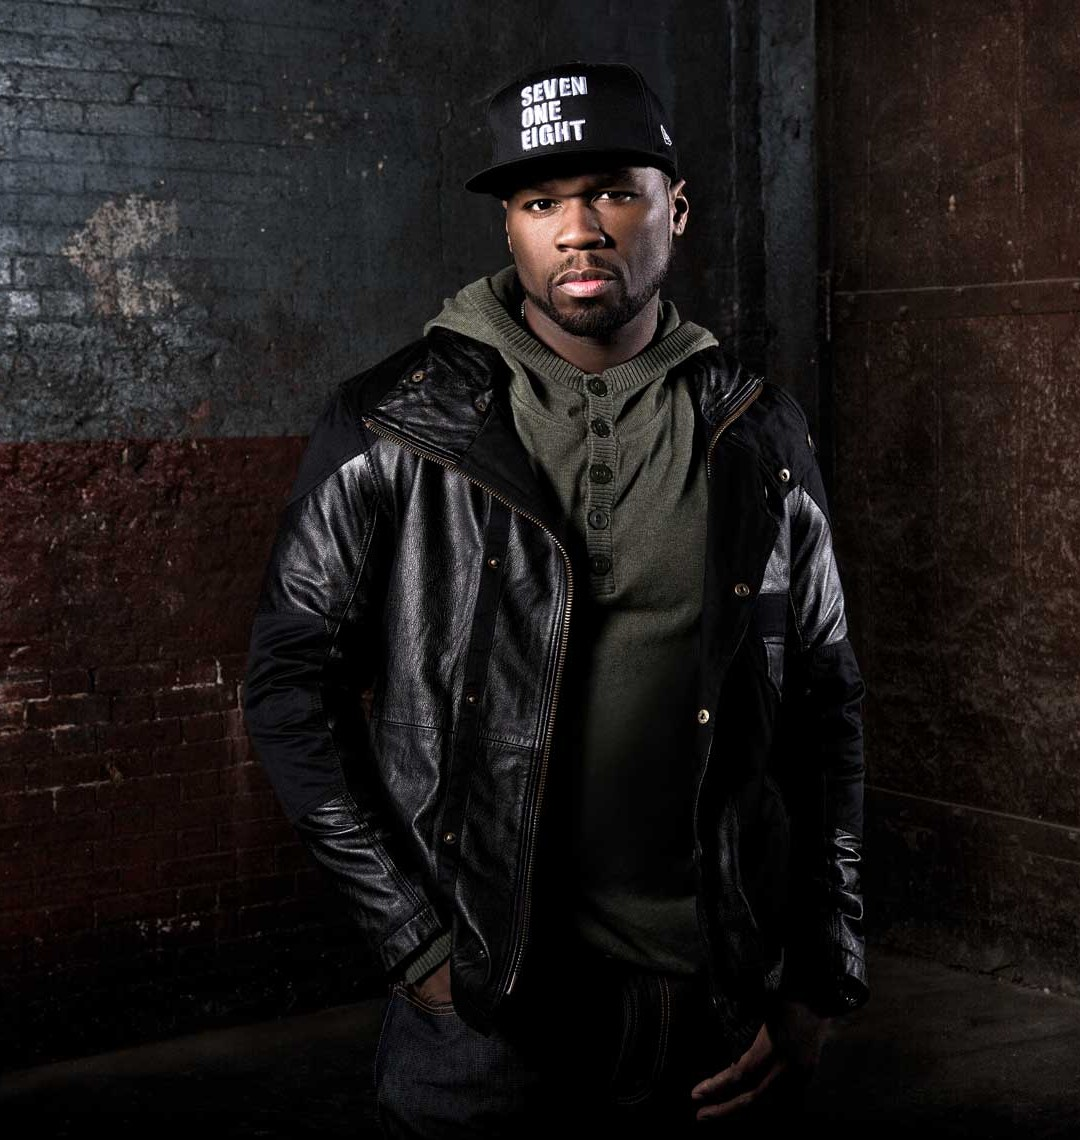 50 Cent Wallpapers - Wallpaper Cave